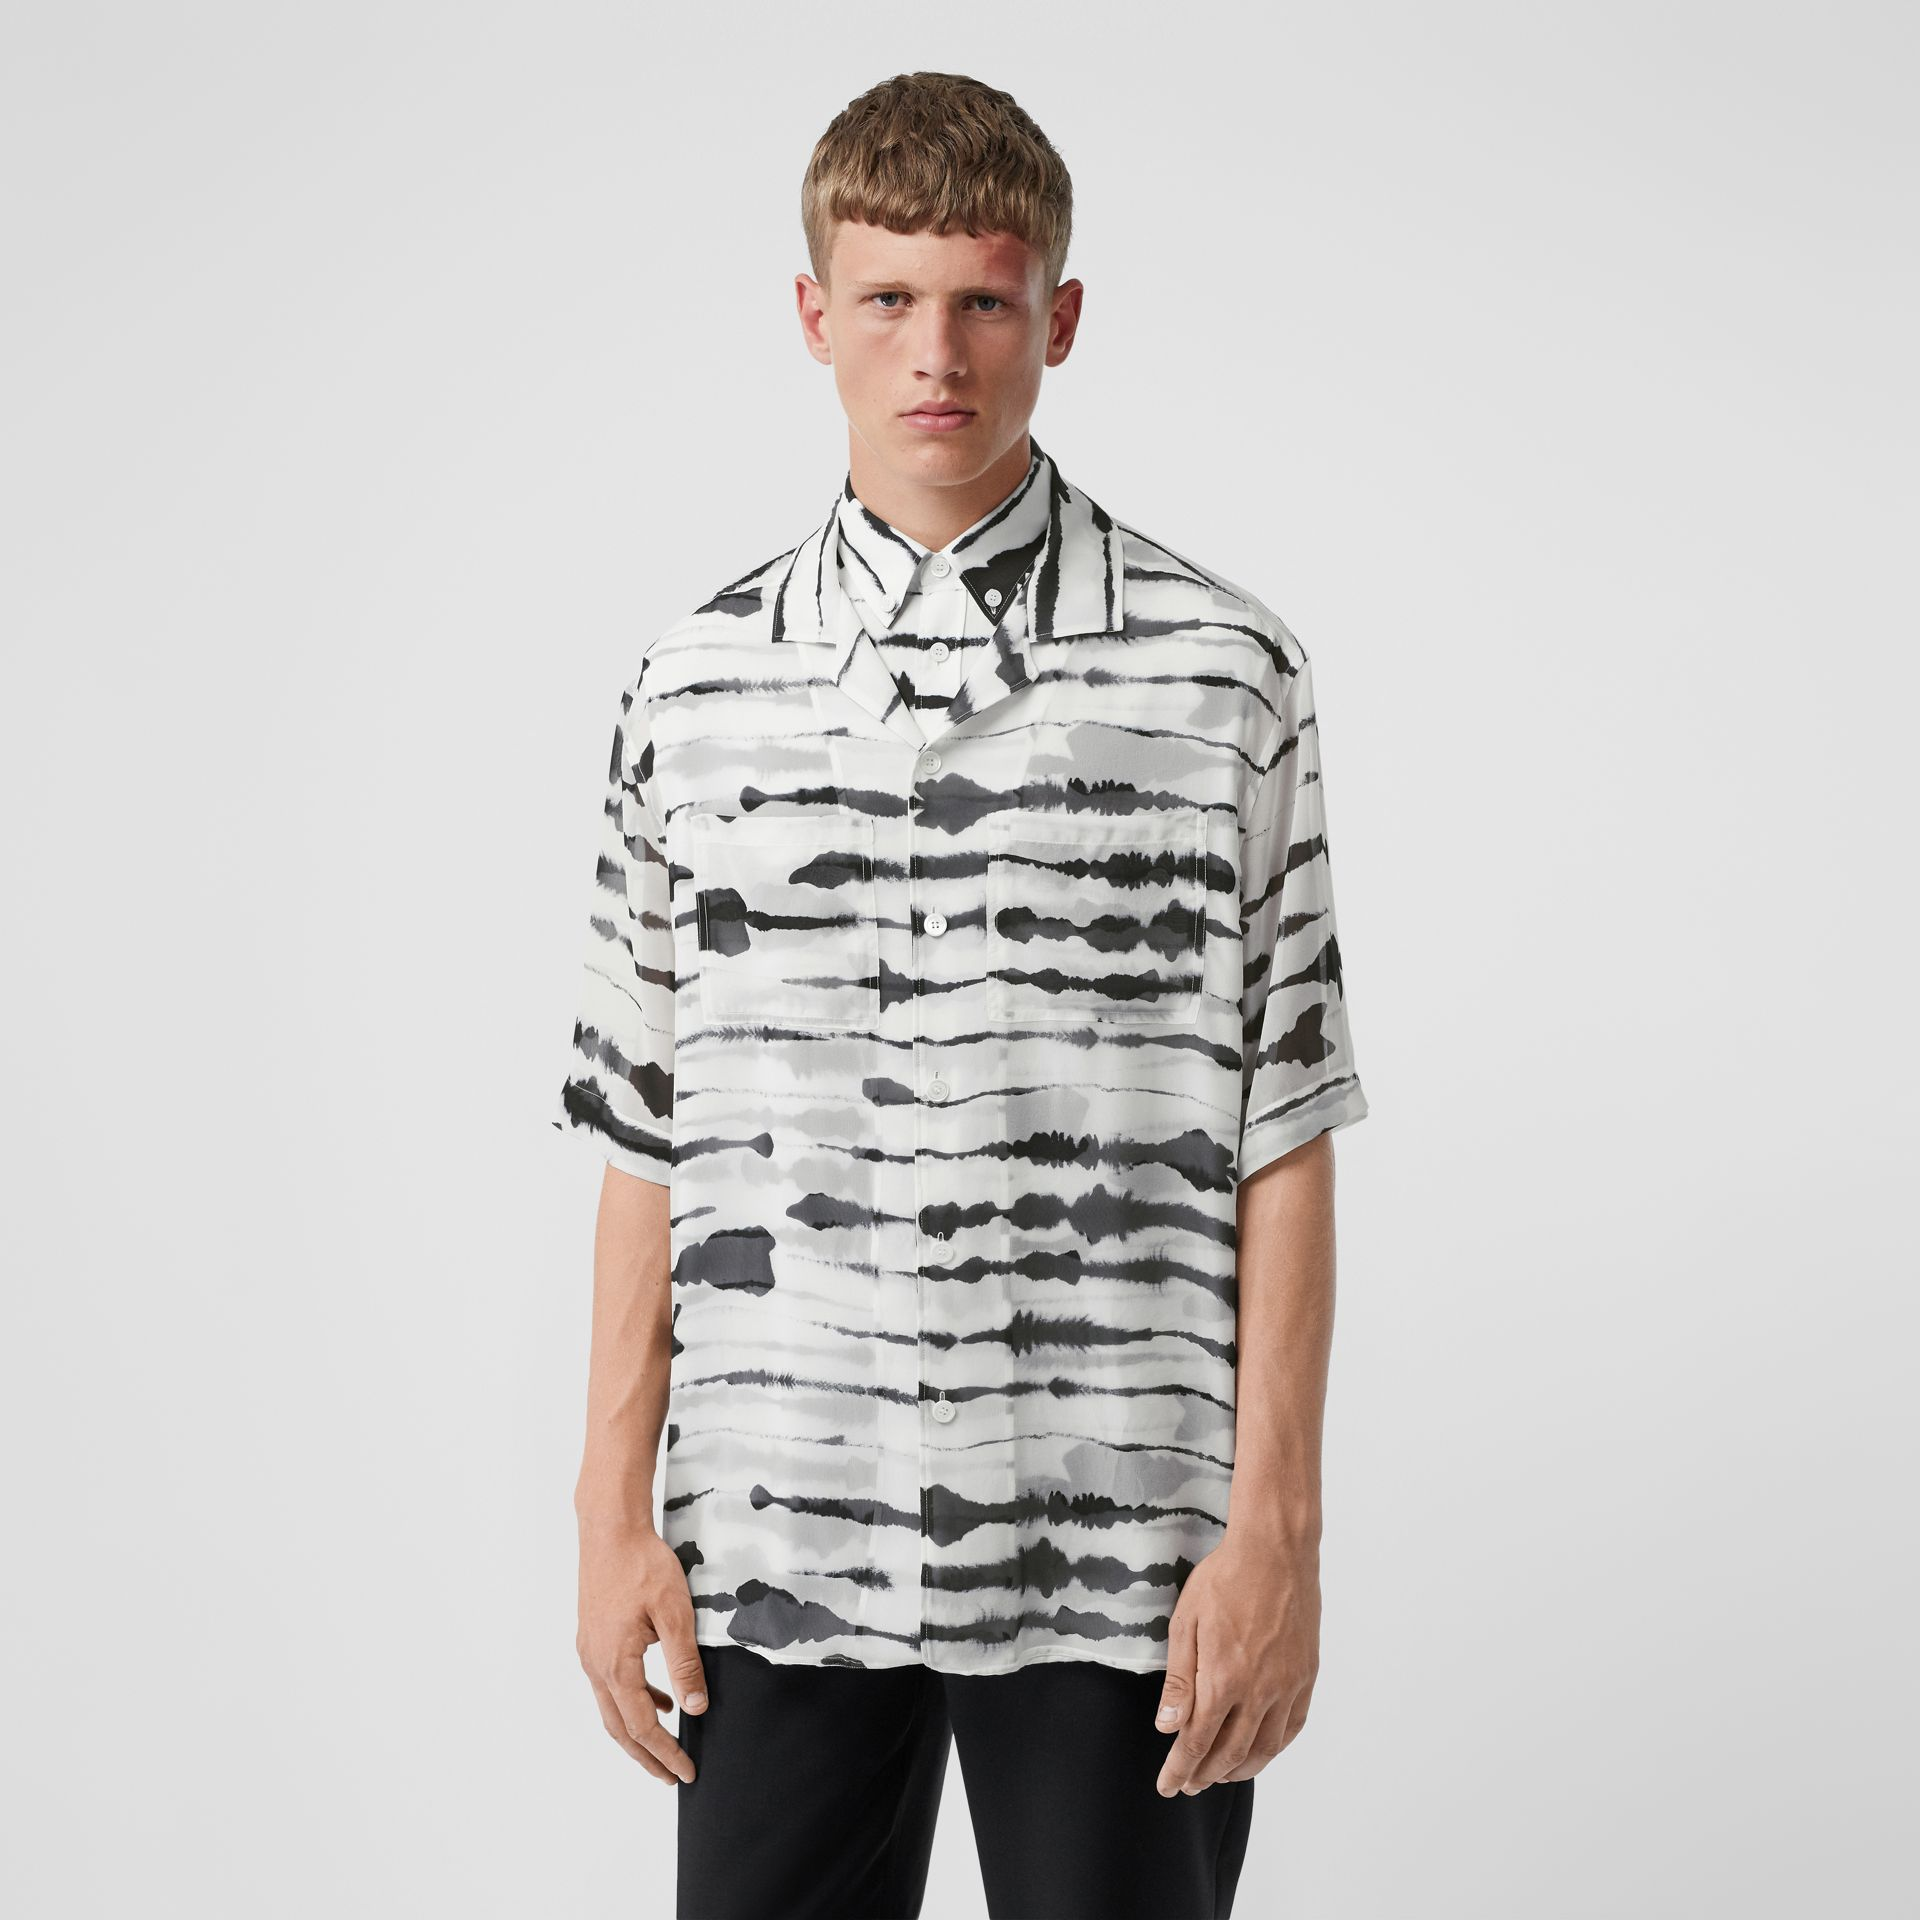 Short-sleeve Silk Overlay Watercolour Print Twill Shirt in Monochrome | Burberry United States - gallery image 0